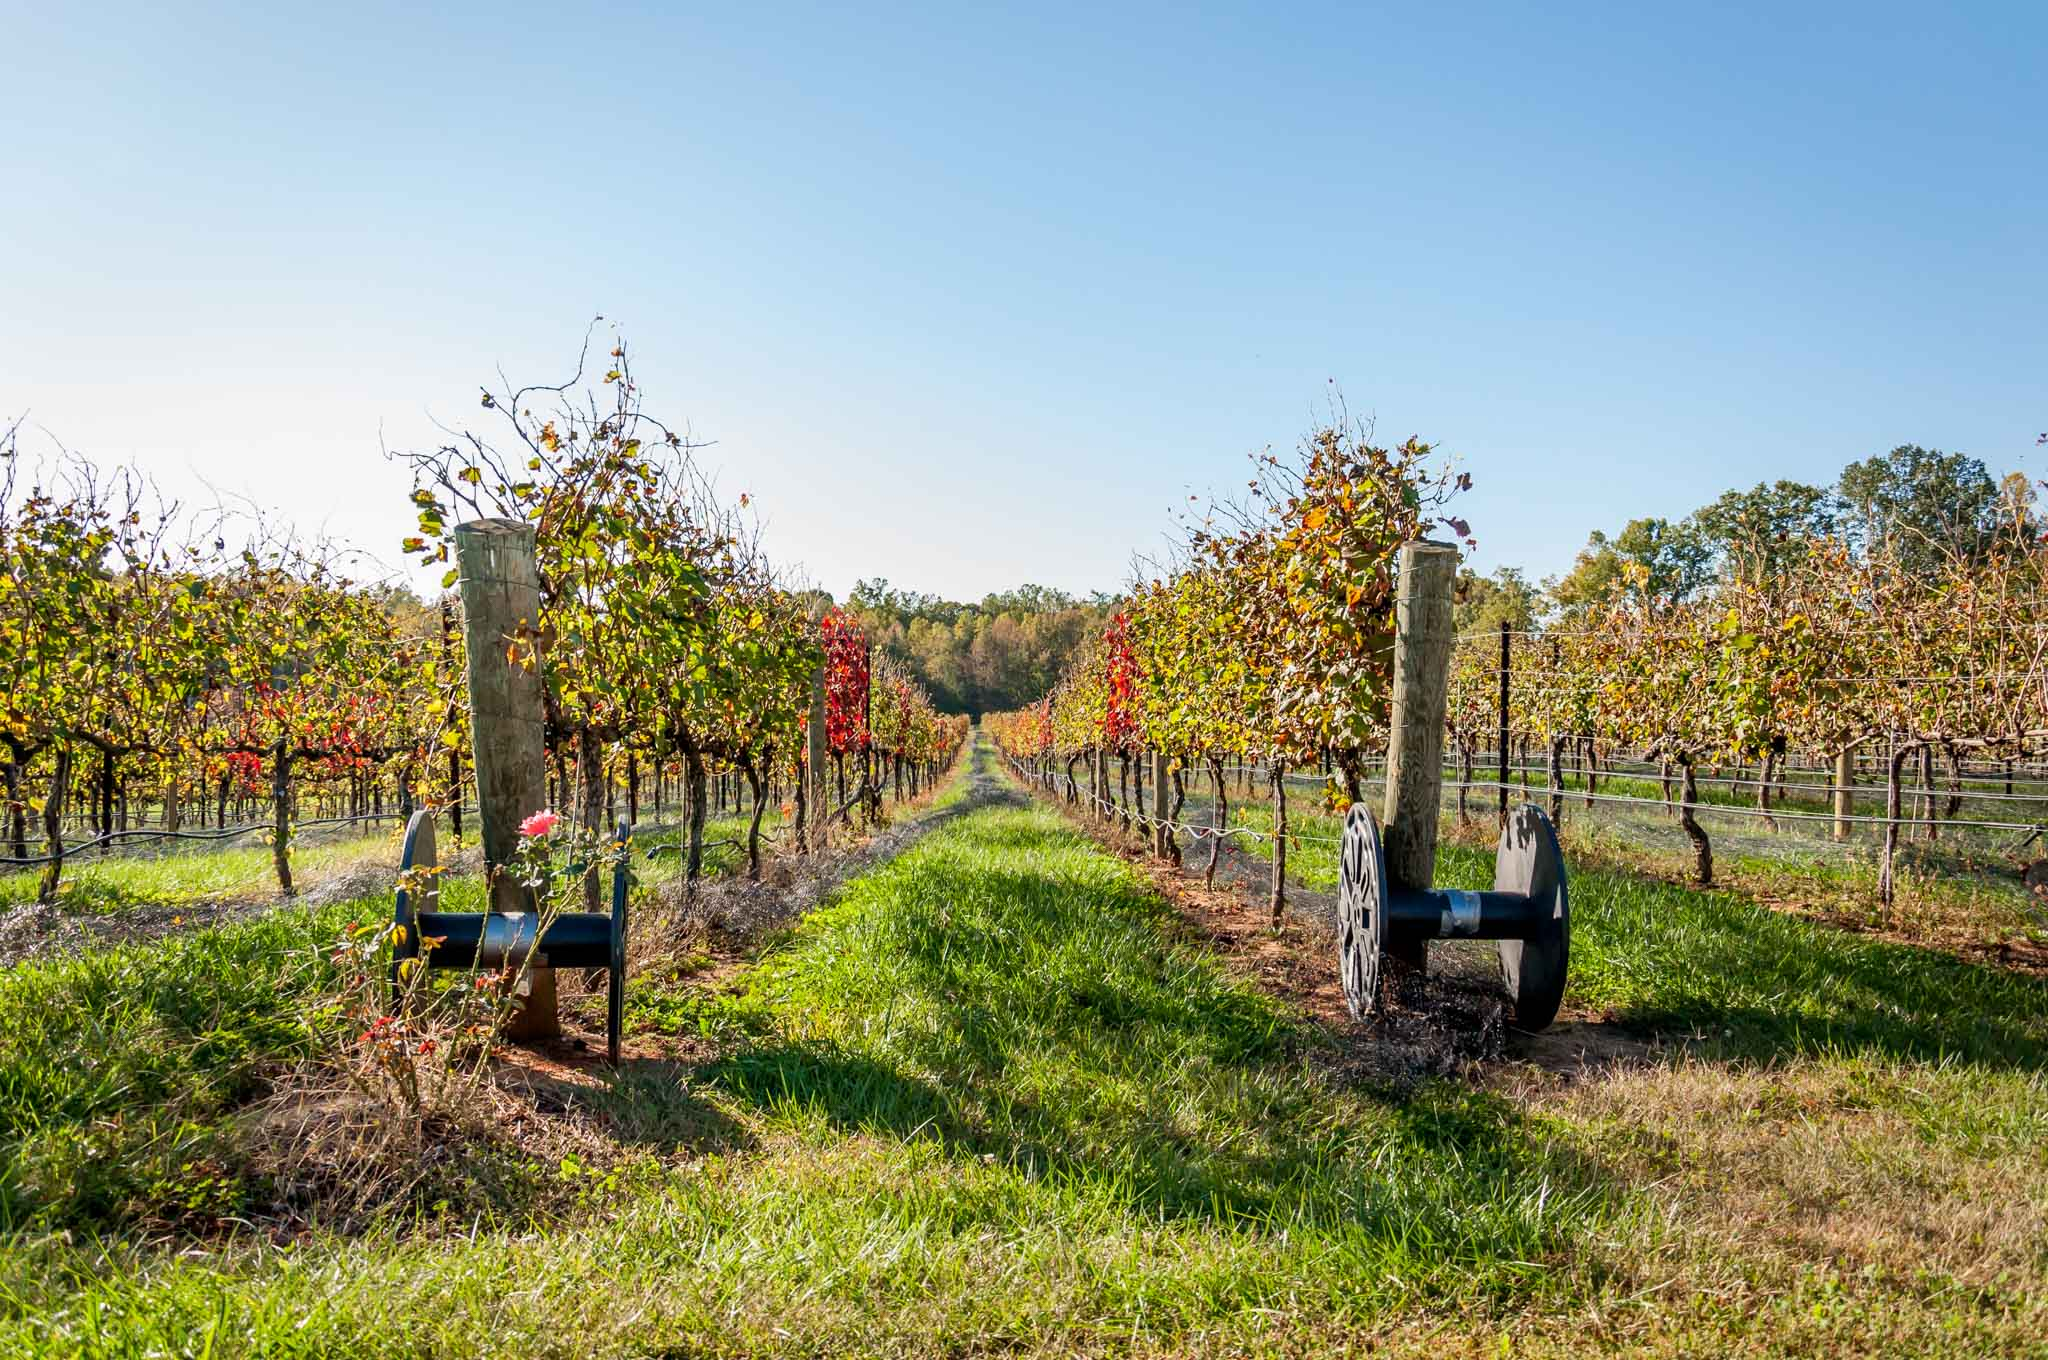 The vines in a vineyard in the autumn